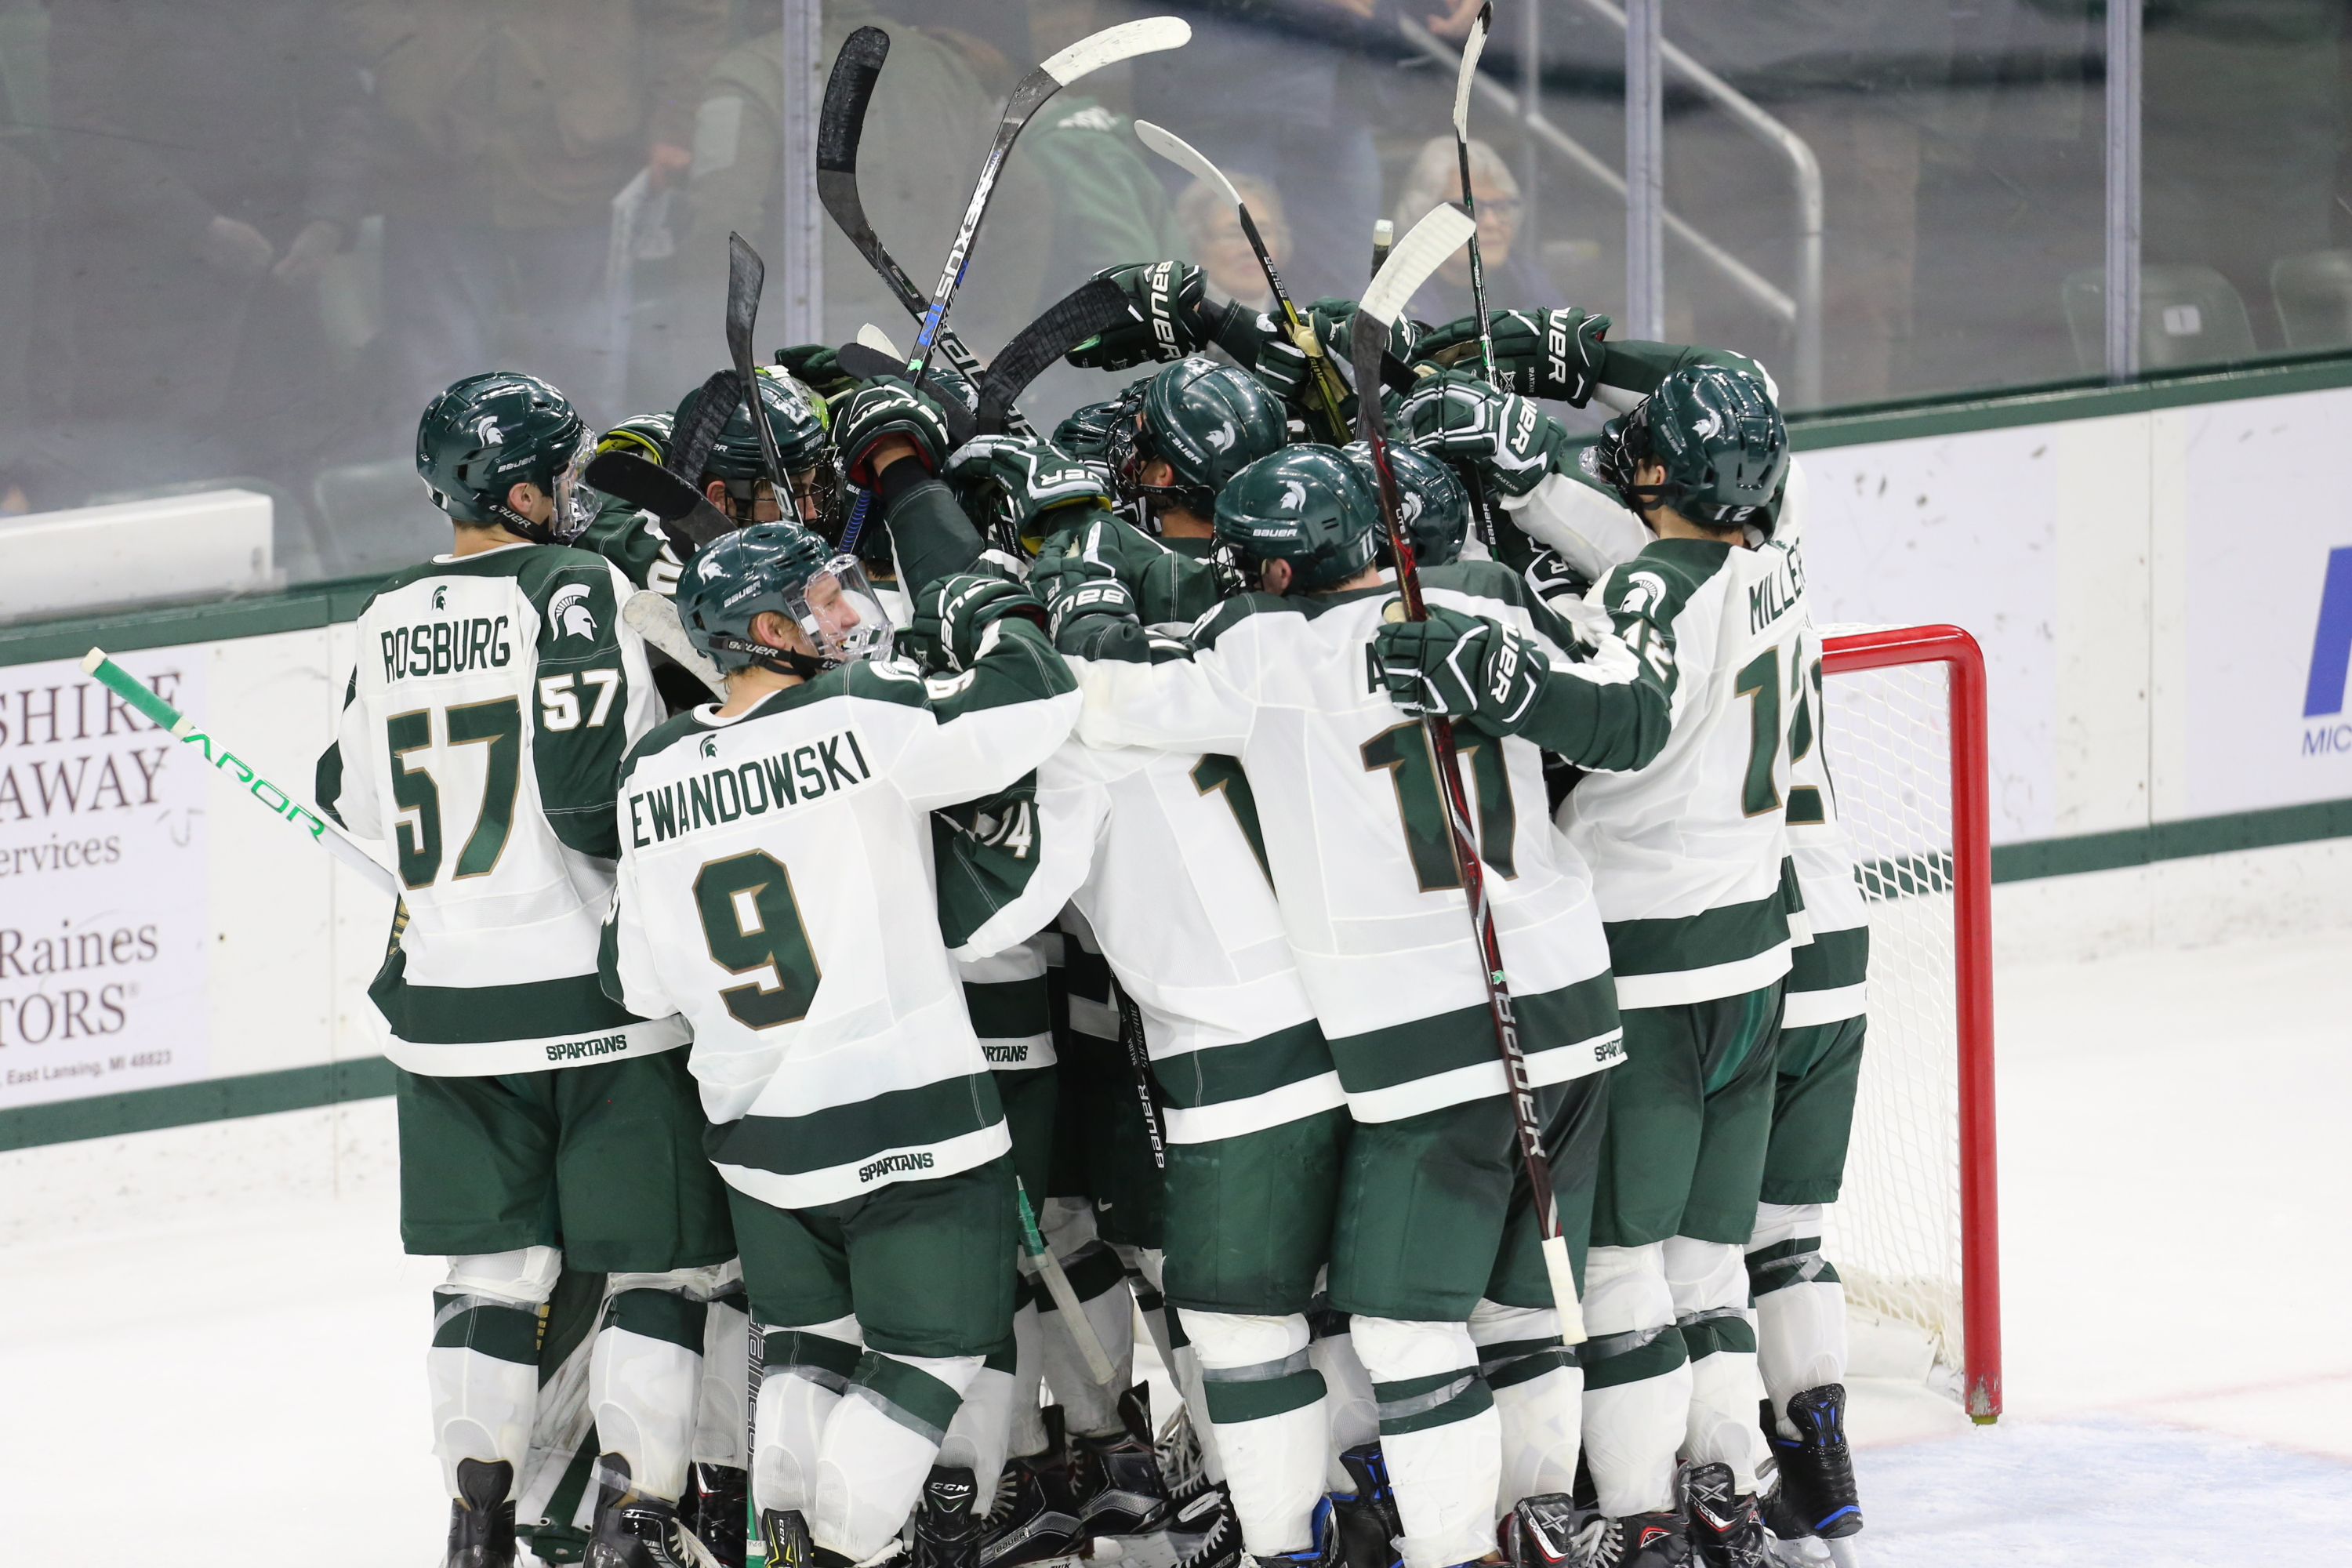 Spartan Hockey Releases 2018-19 Schedule - Michigan State University ... f184c907d